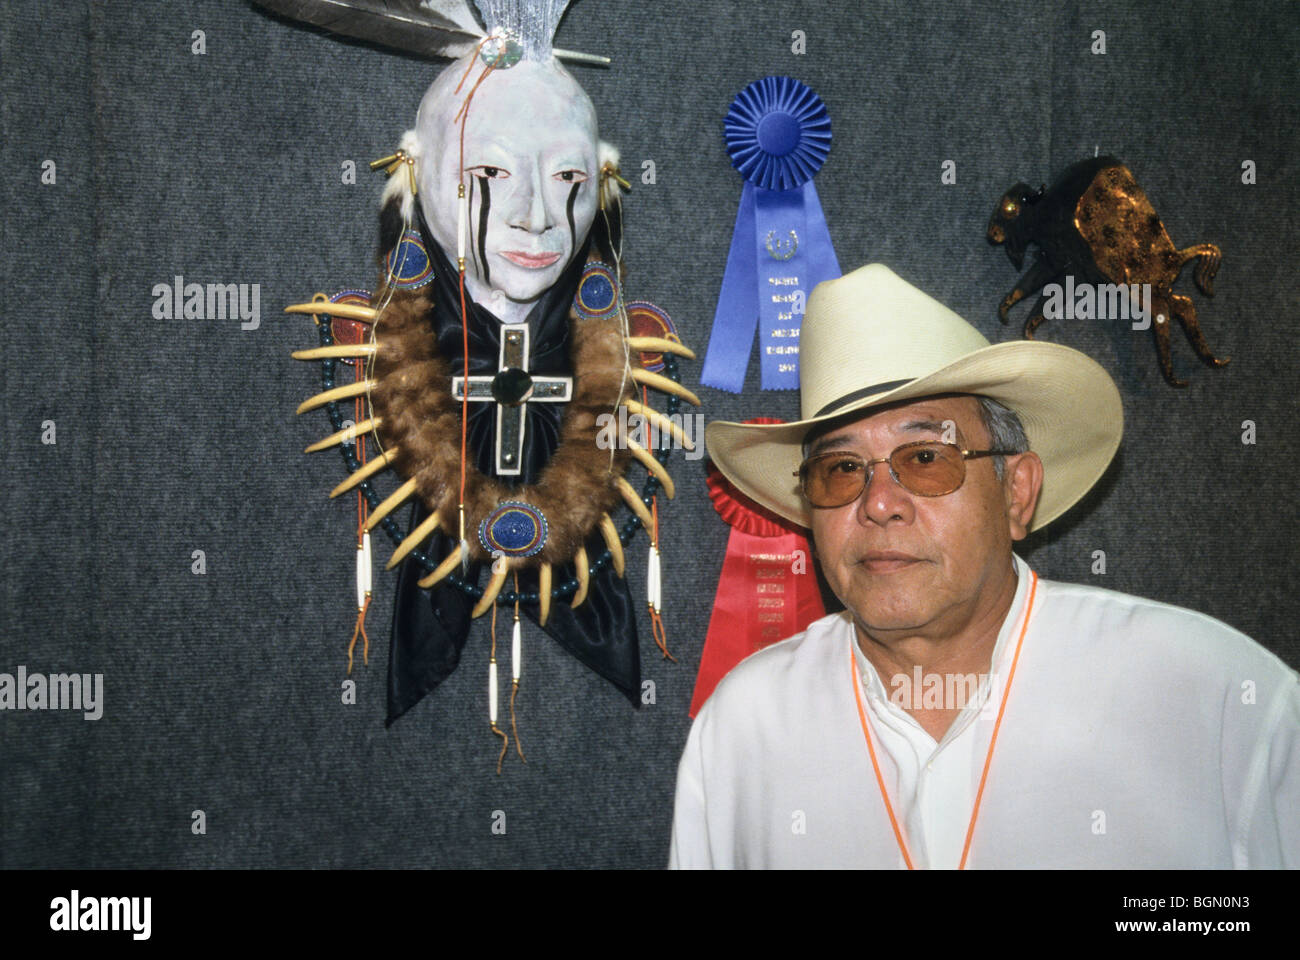 Contemporary Native American raku clay artist exhibits his award winning sculpture during the Red Earth Pow Wow Festival, OK Stock Photo